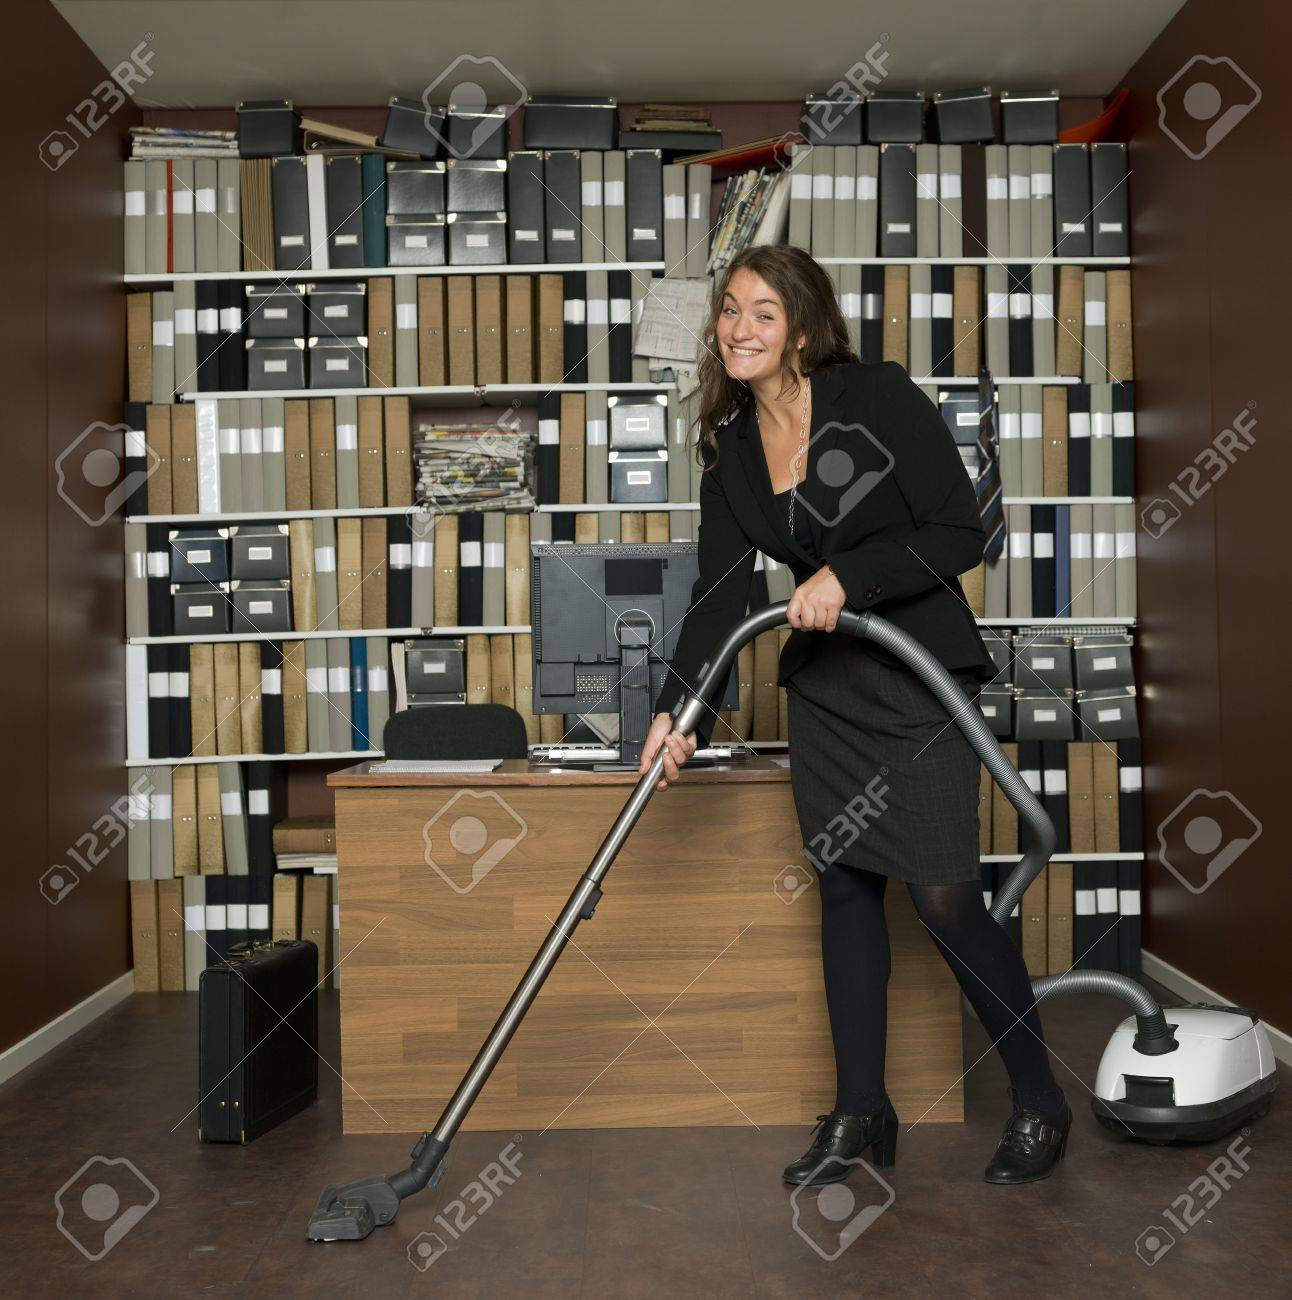 Young woman cleaning the office Stock Photo - 16009229